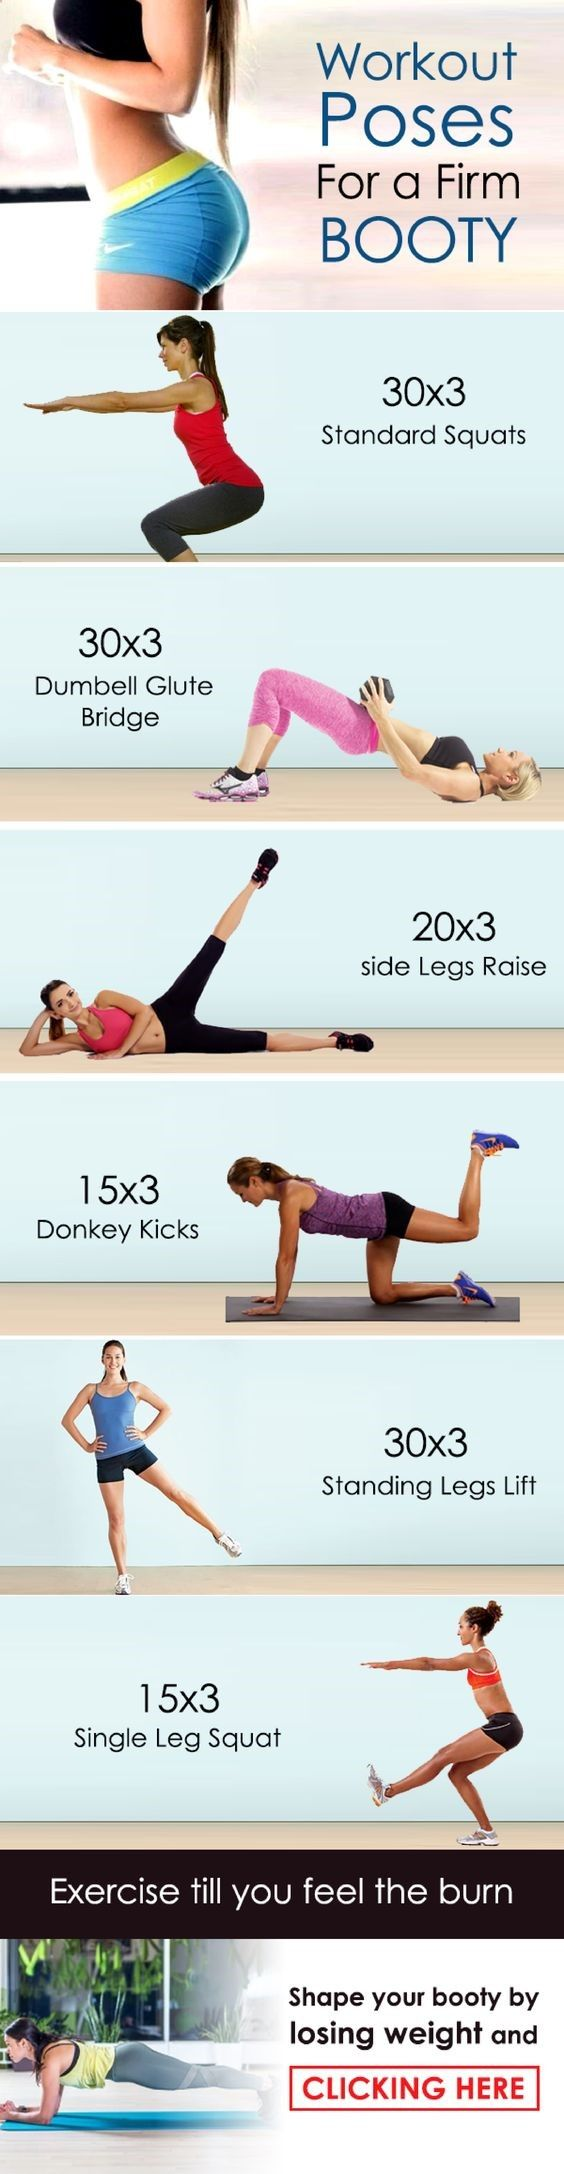 Yoga Fitness Flat Belly 7-Minutes VegeSlim Workout Plan to Transform Your Body - There are many alternatives to get a flat stomach and among them are various yoga poses.